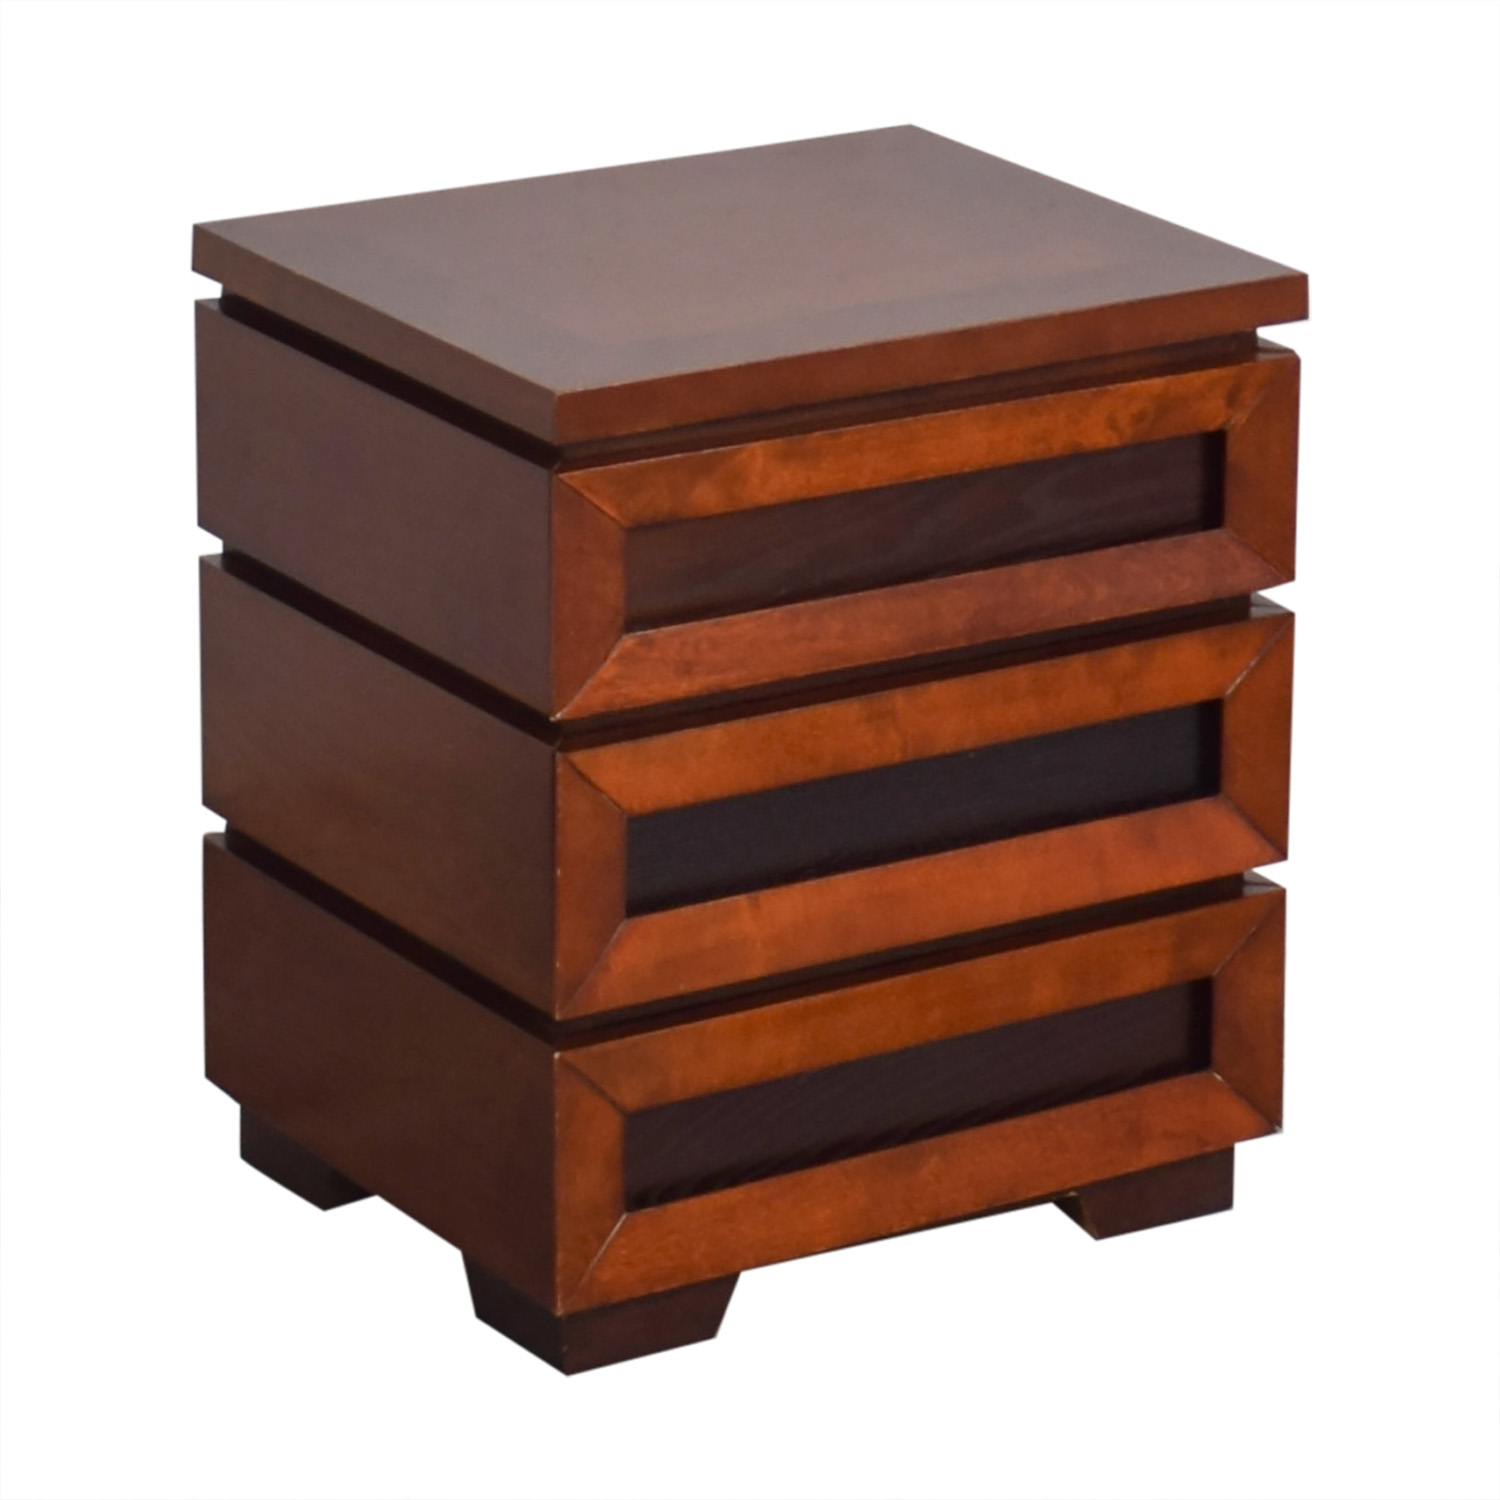 54% OFF   Crate U0026 Barrel Crate U0026 Barrel Side Table With Drawers / Tables